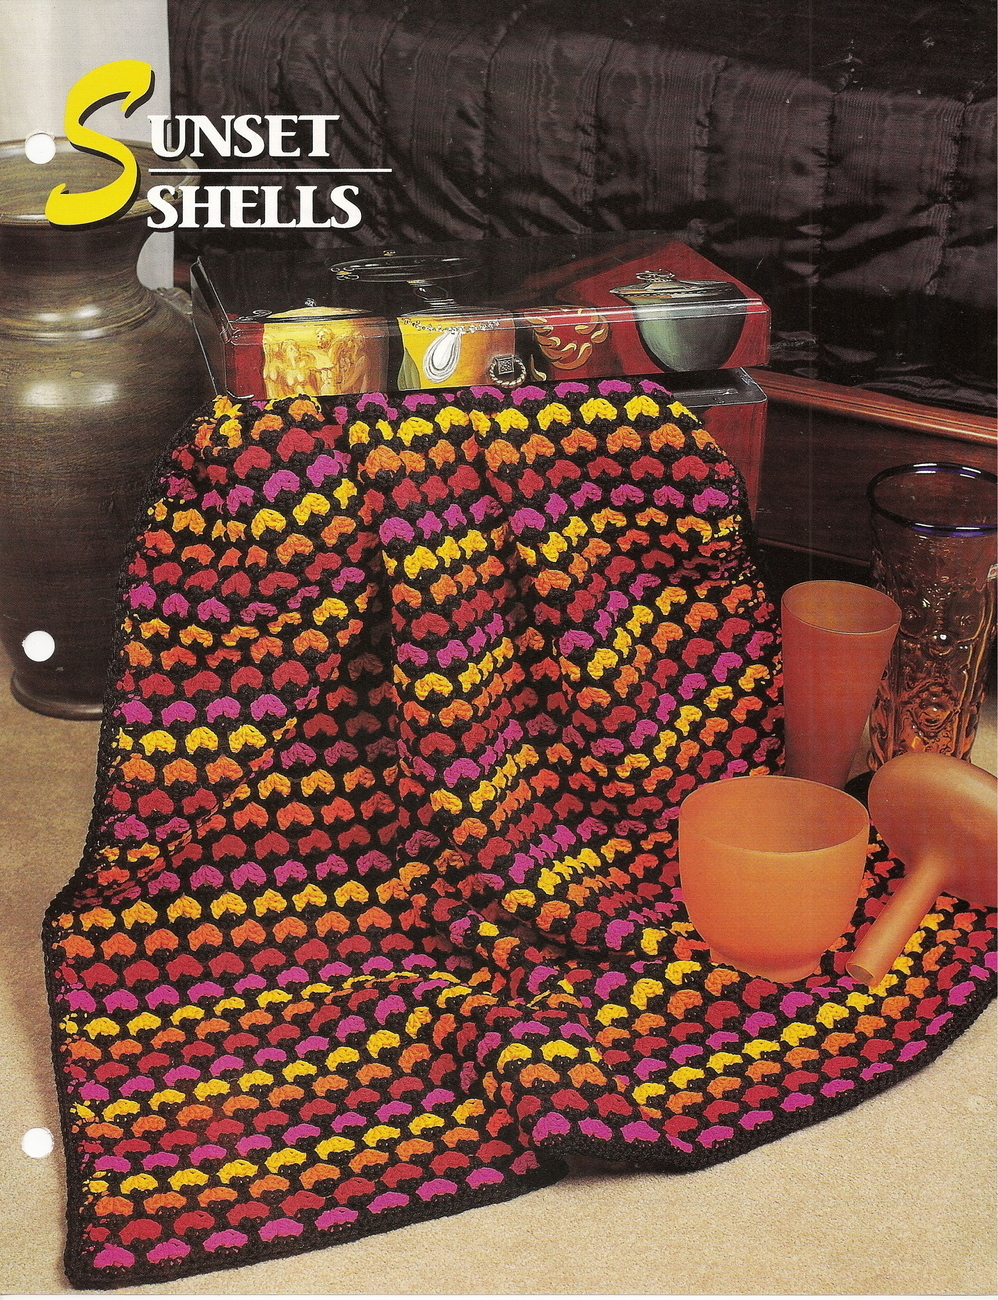 Sunset Shells Afghan Crochet Pattern Annies Attic Crochet & Quilt Club